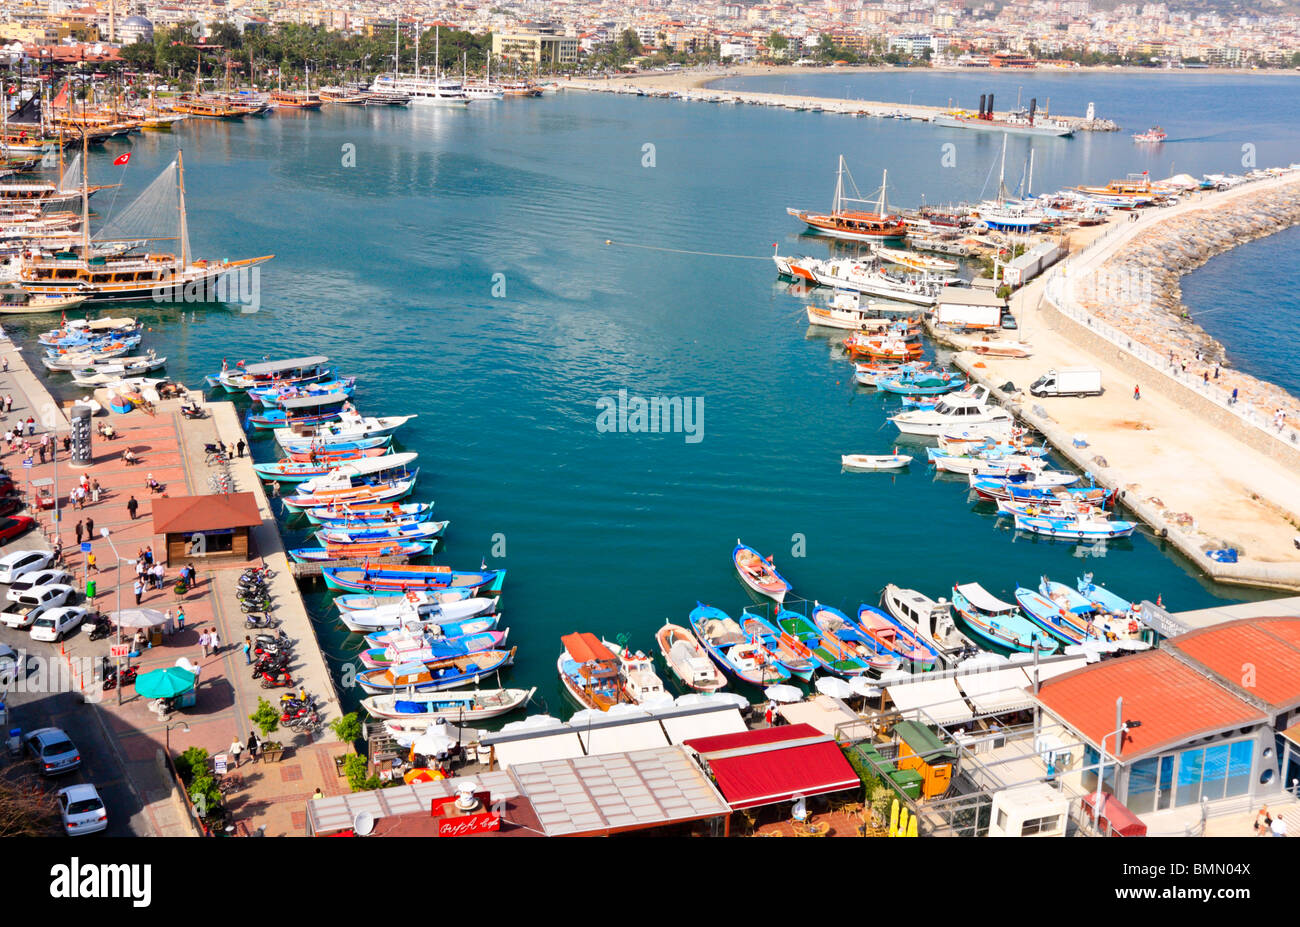 Aerial View of the Harbour, Alanya, Turkey - Stock Image